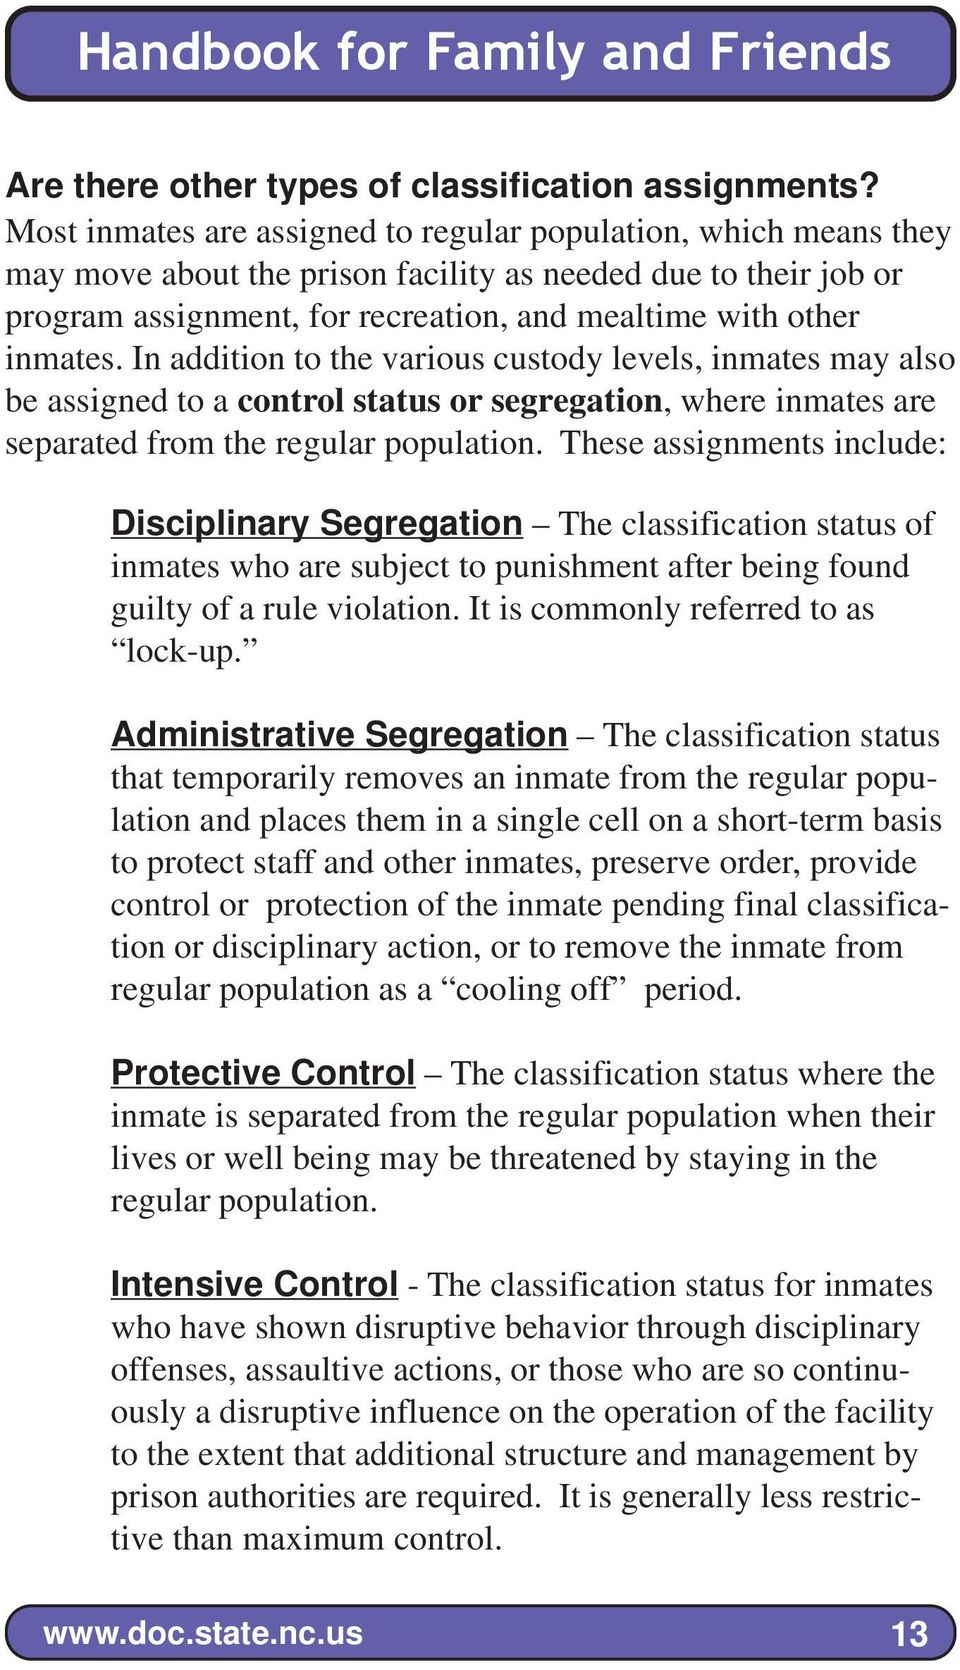 In addition to the various custody levels, inmates may also be assigned to a control status or segregation, where inmates are separated from the regular population.